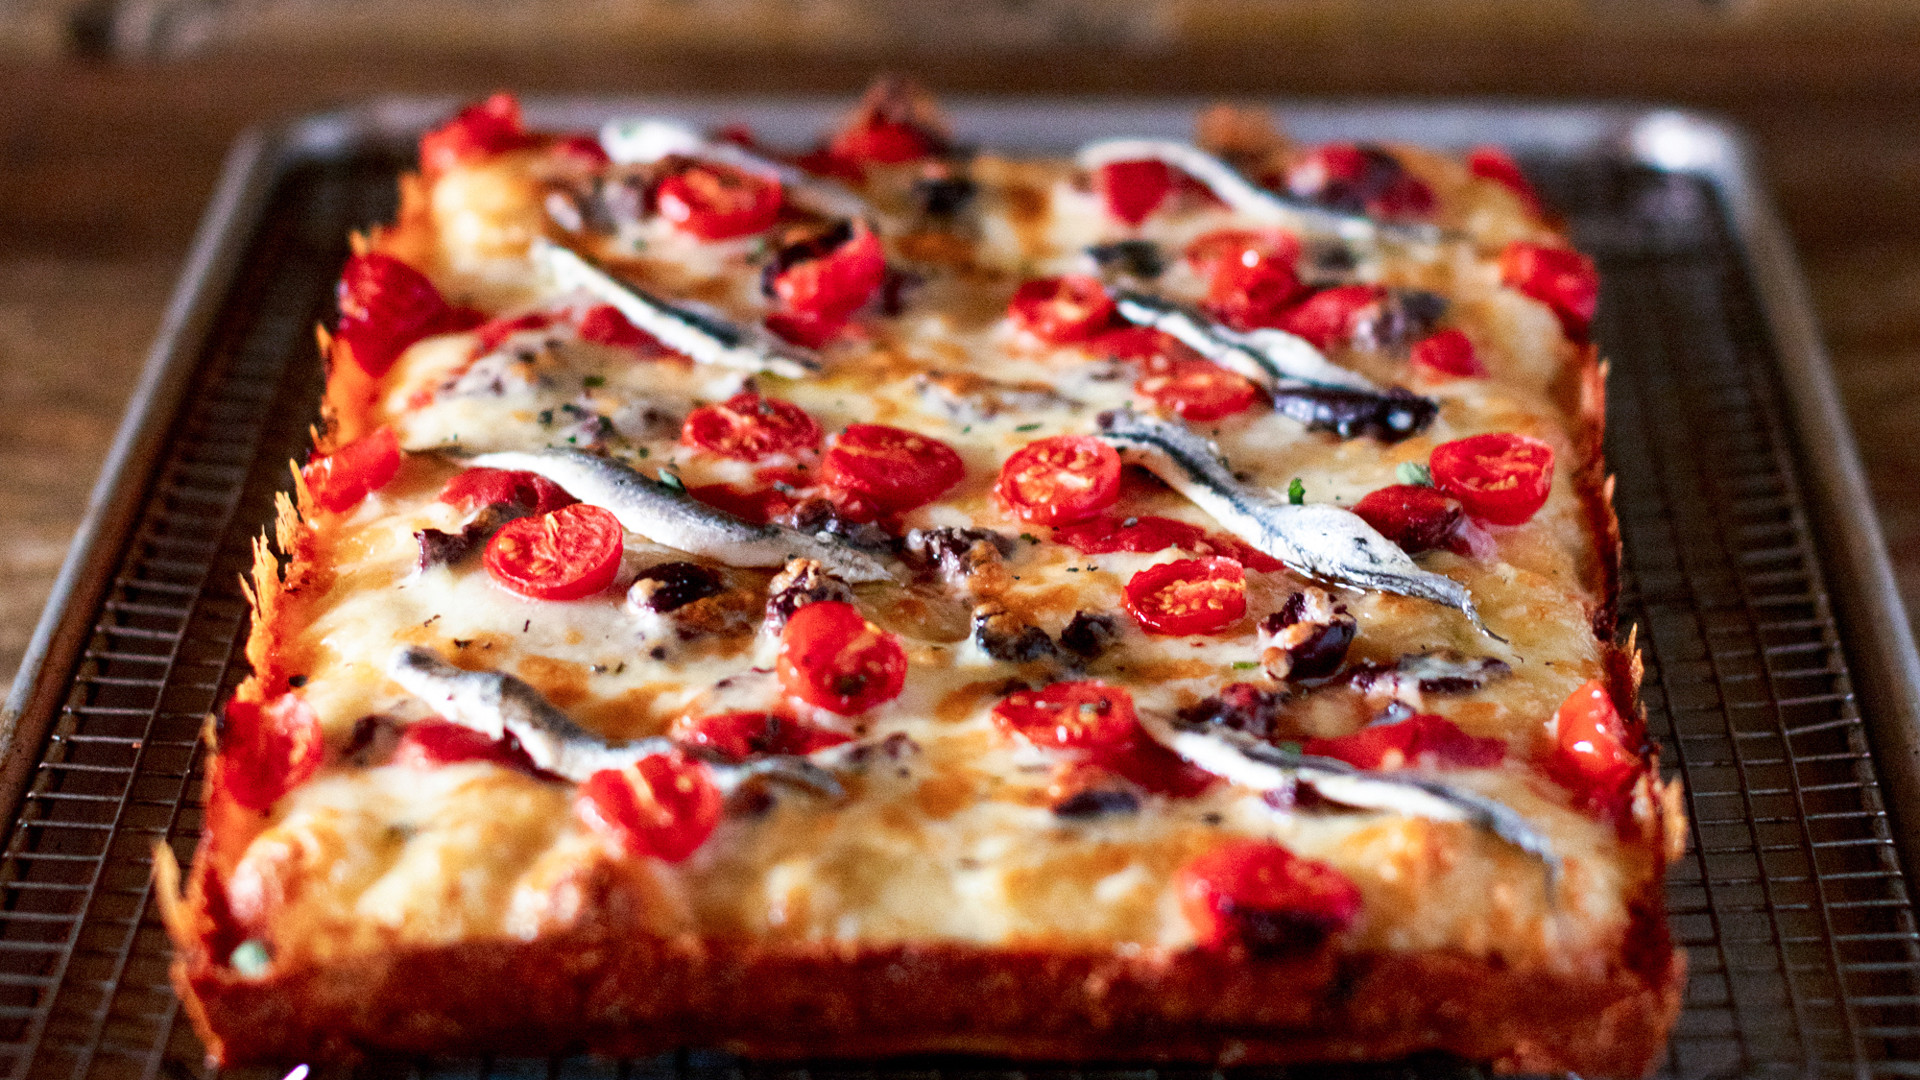 The best new restaurants in Toronto | Mediterranean Detroit-style pan pizza with boquerones, olives, tomatoes, cheese & tomato sauce at Gianna's Patties and Pies